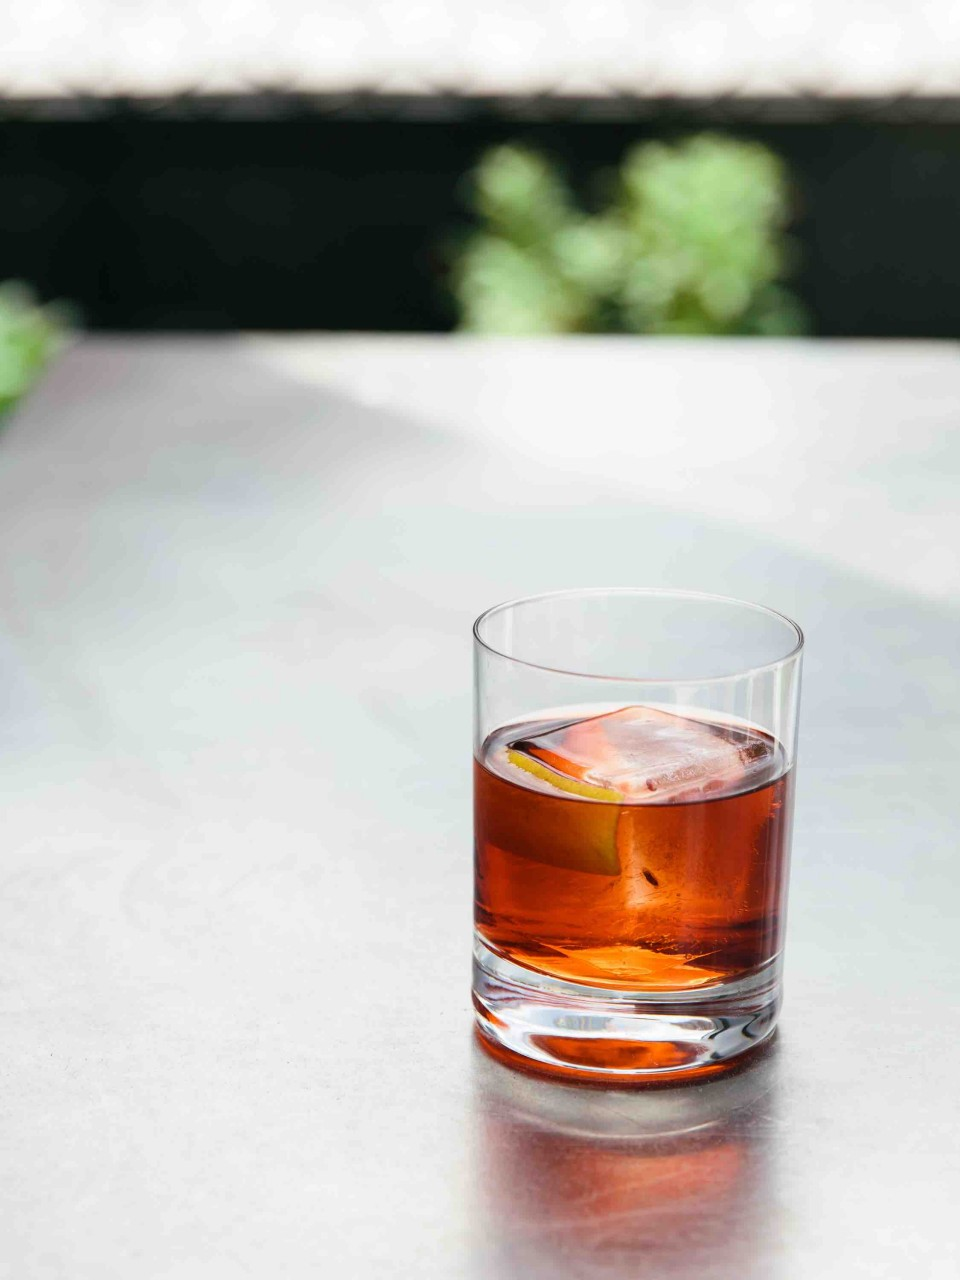 The classic Negroni cocktail highlights Campari and helps drive sales of the bitter aperitif at bars like Bar Urbo in New York City.